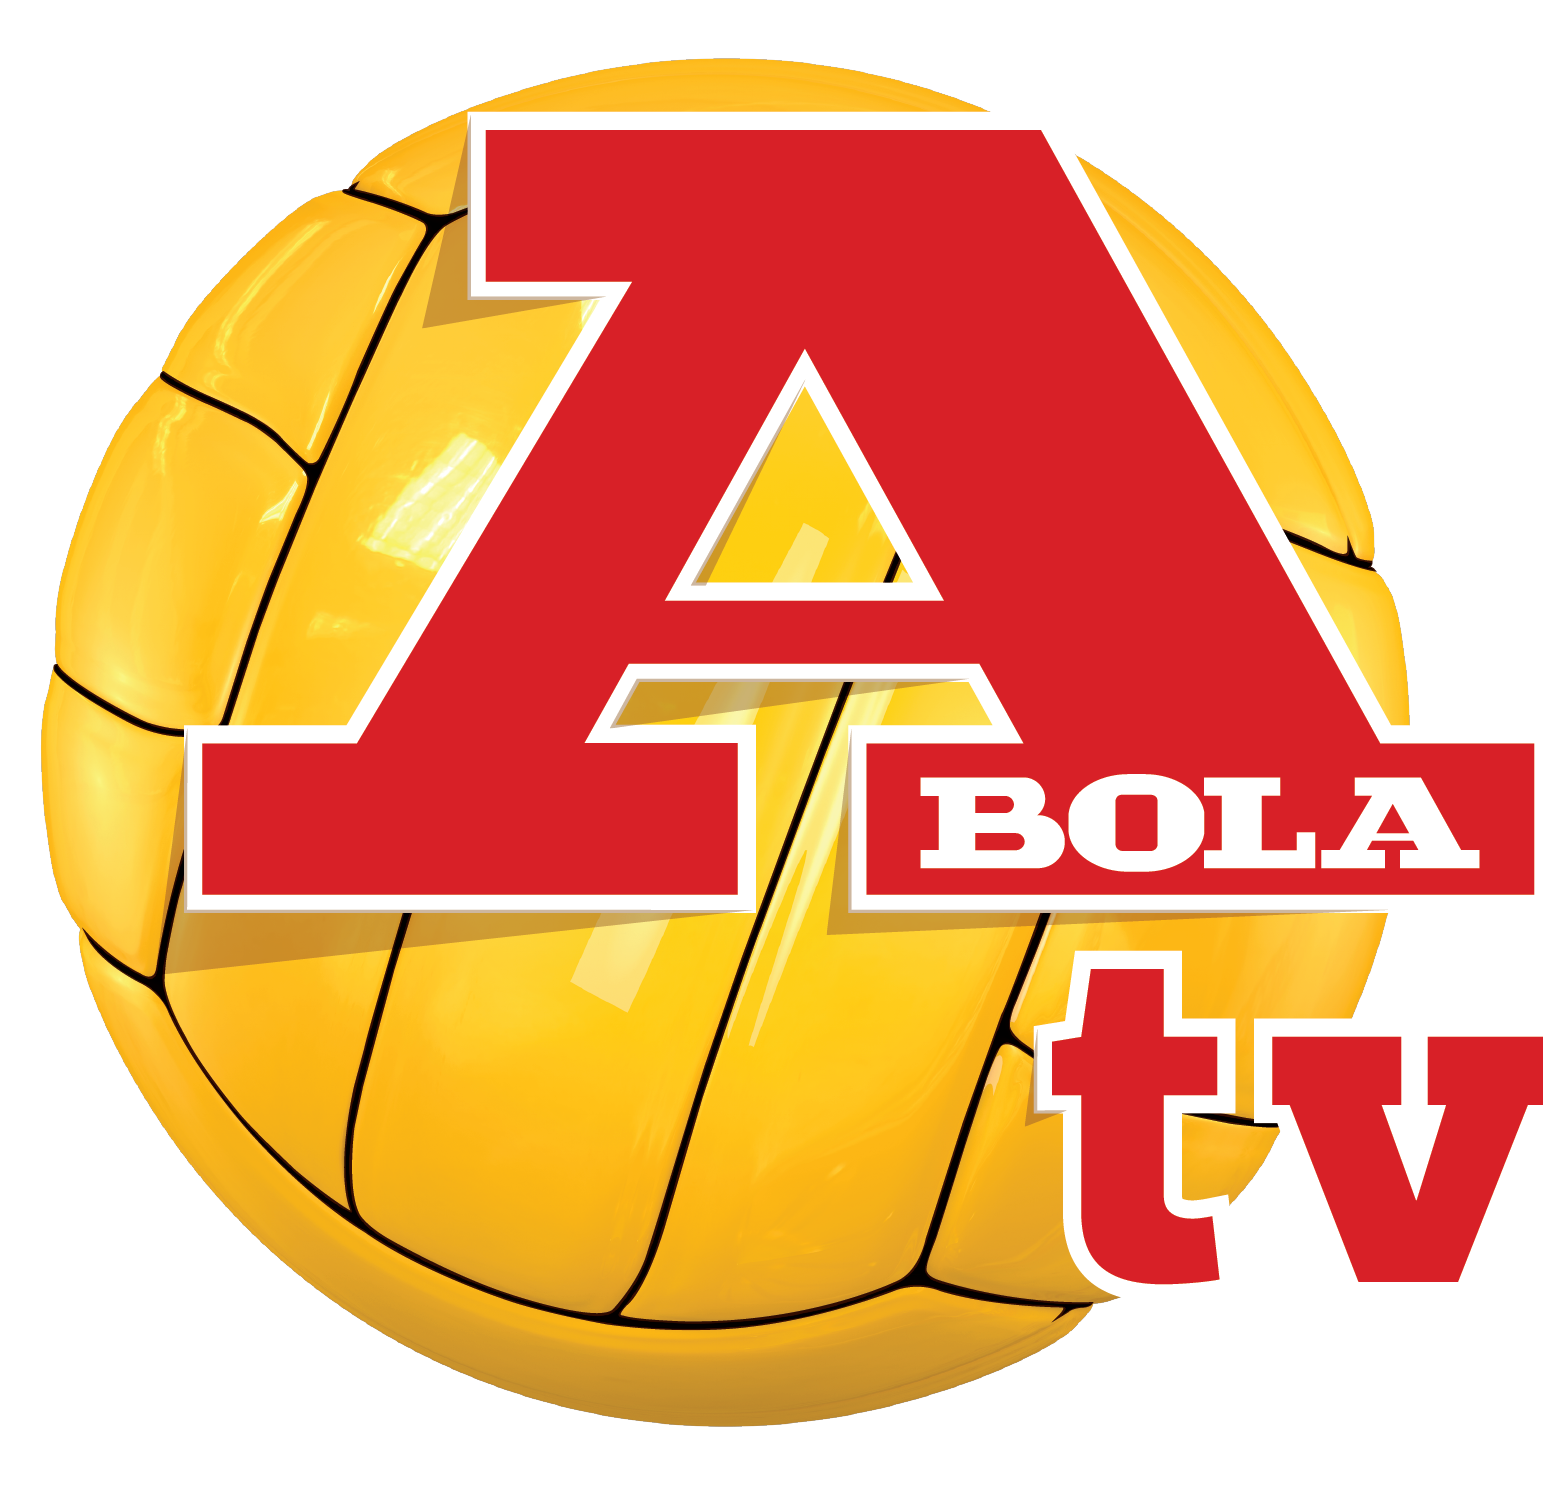 https://www.thematv.com/medias/channels/a-bola/a-bola.png